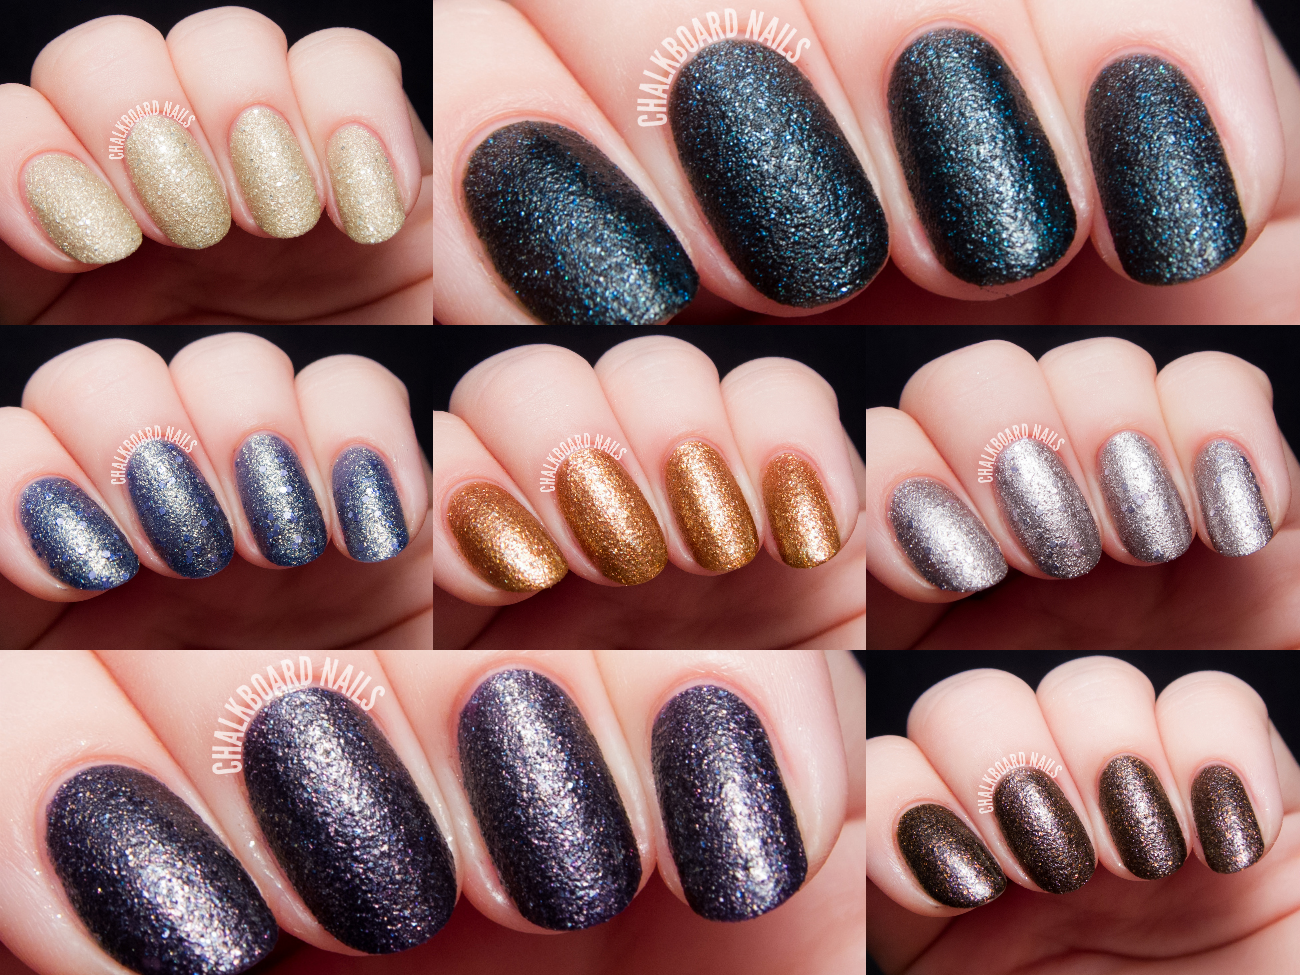 Color Club Seven Deadly Sins Collection via @chalkboardnails